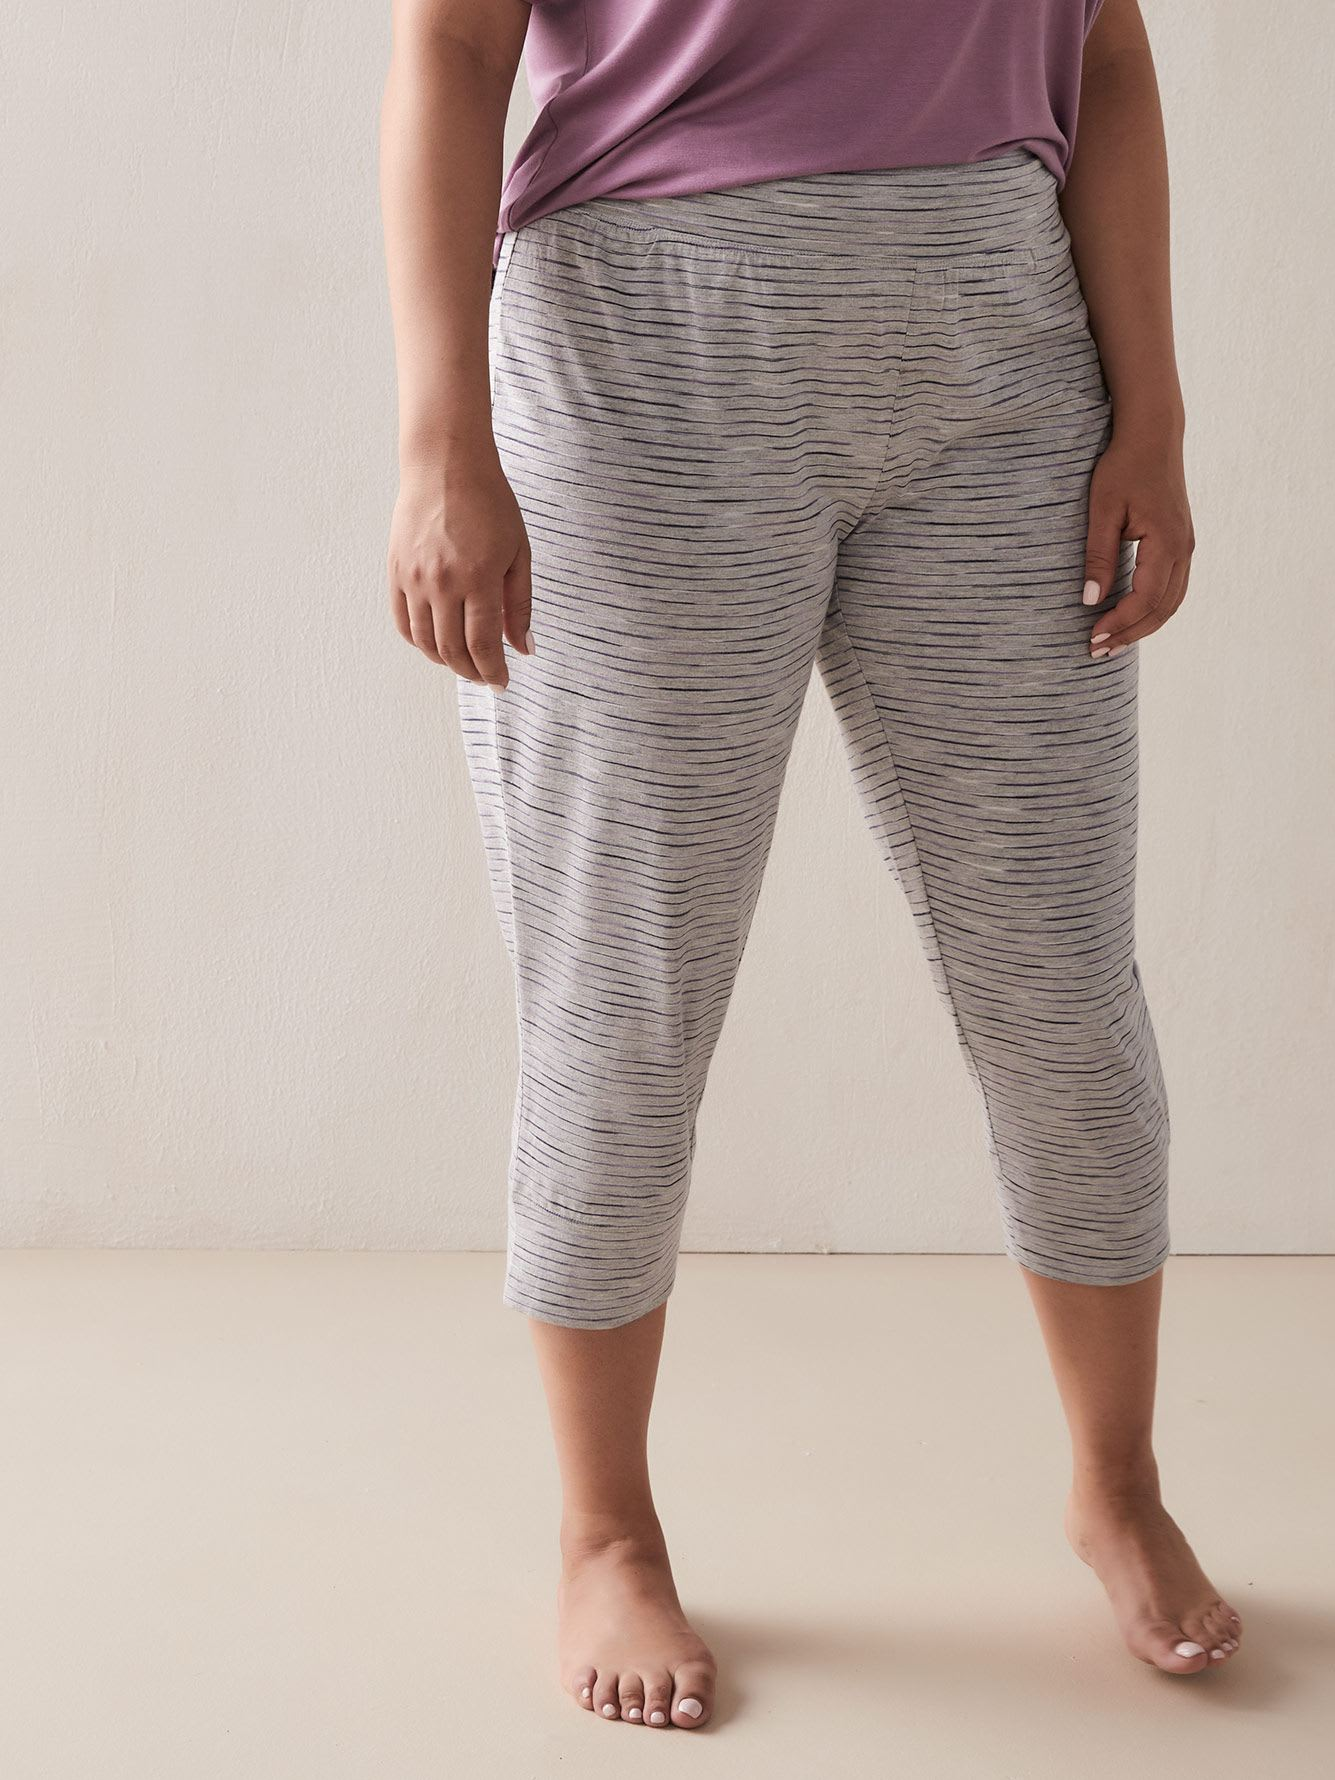 Striped & Heathered PJ Capri Pants - Addition Elle